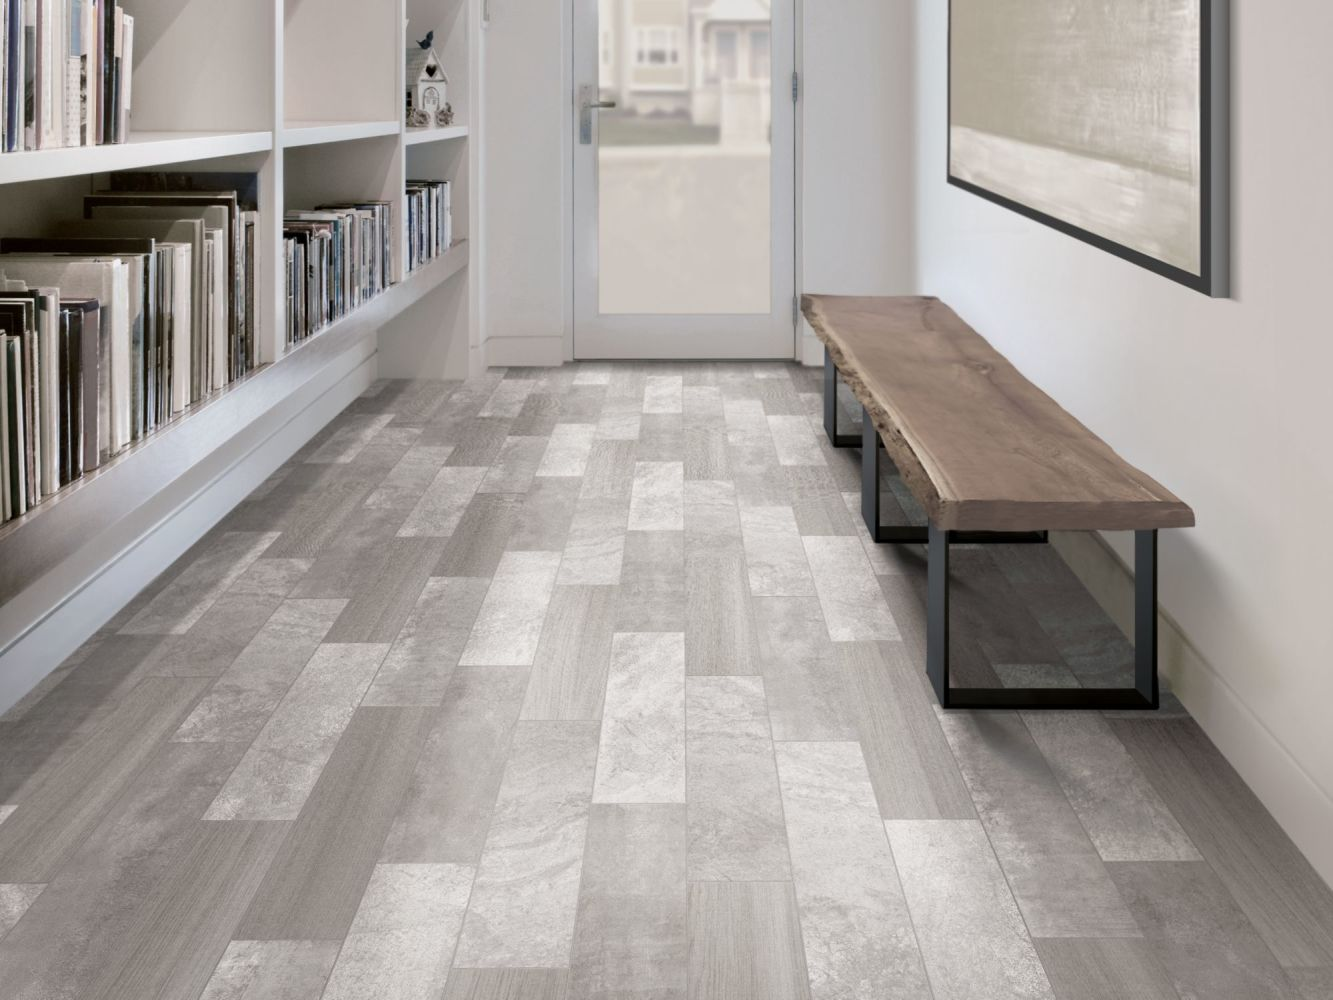 Shaw Floors Resilient Residential Pro 12 II Skyview 00543_VG085